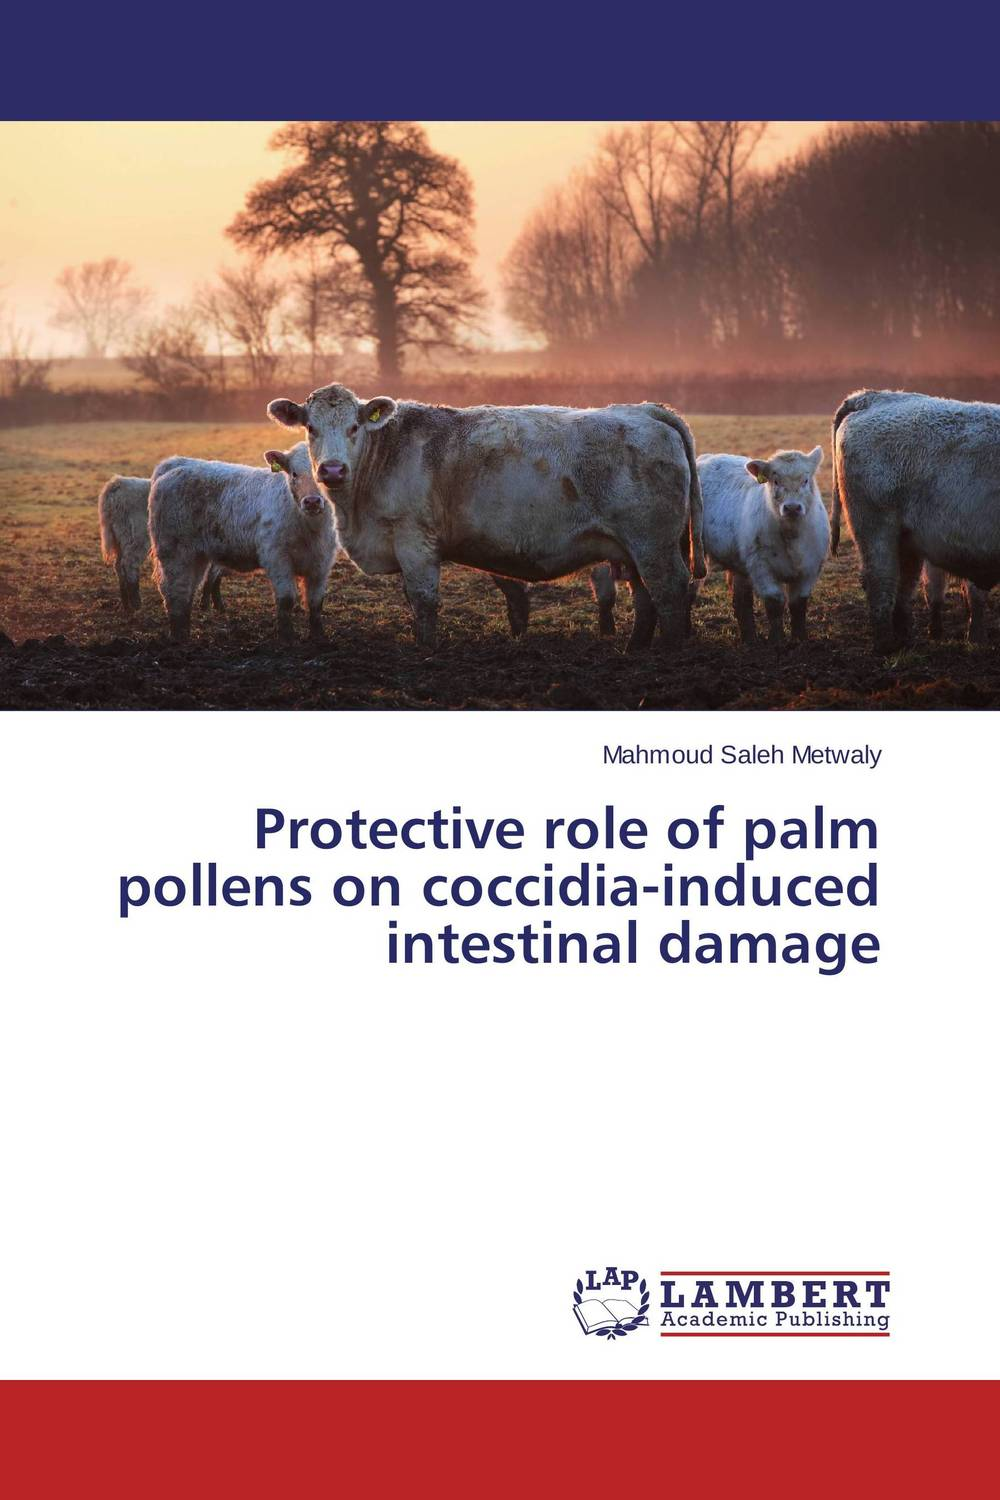 Protective role of palm pollens on coccidia-induced intestinal damage effects of exercise and exendin 4 on metabolic disturbances in mice